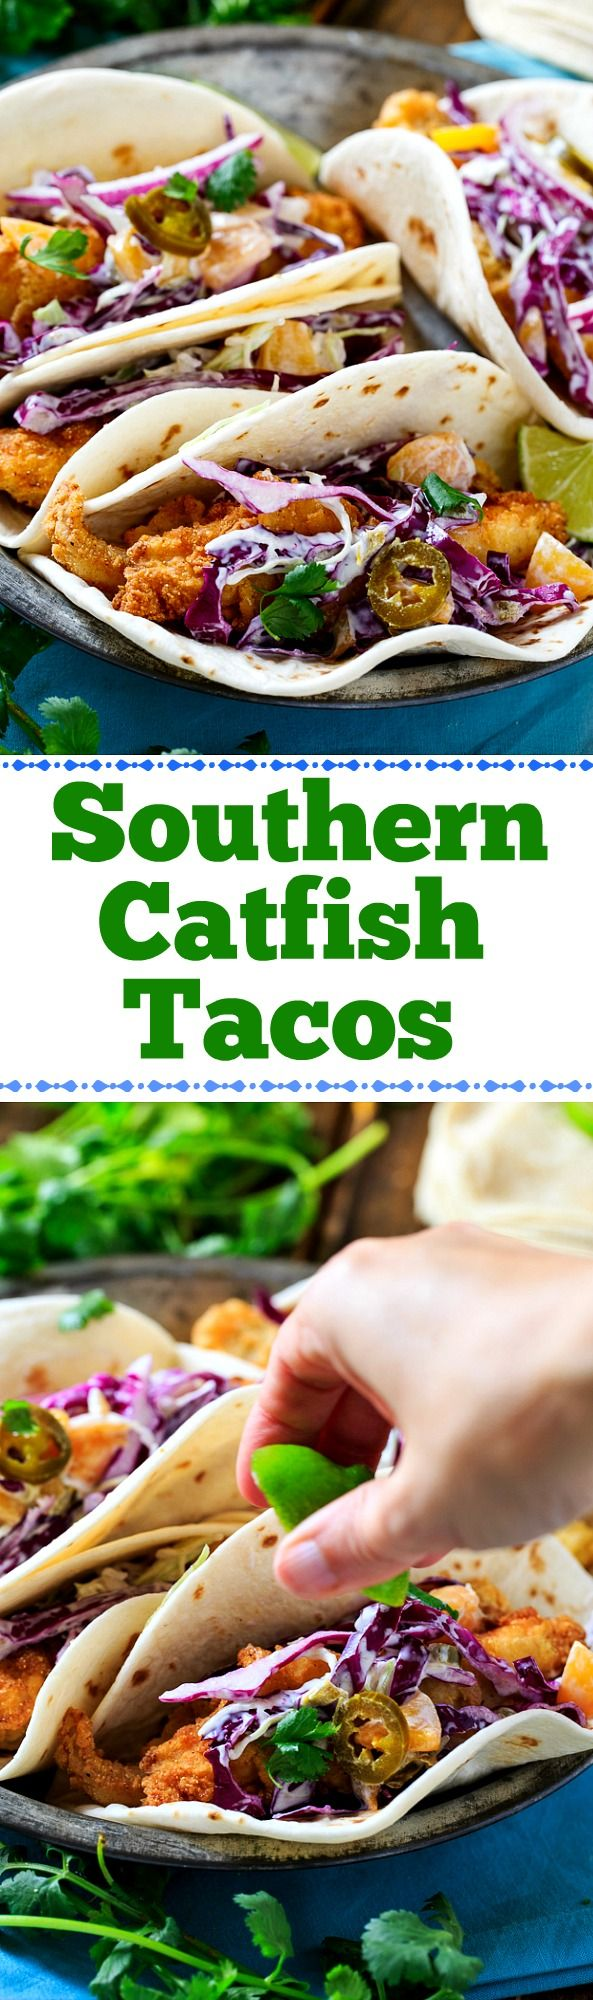 Southern Catfish Tacos with Peach-Jalapeno Coleslaw